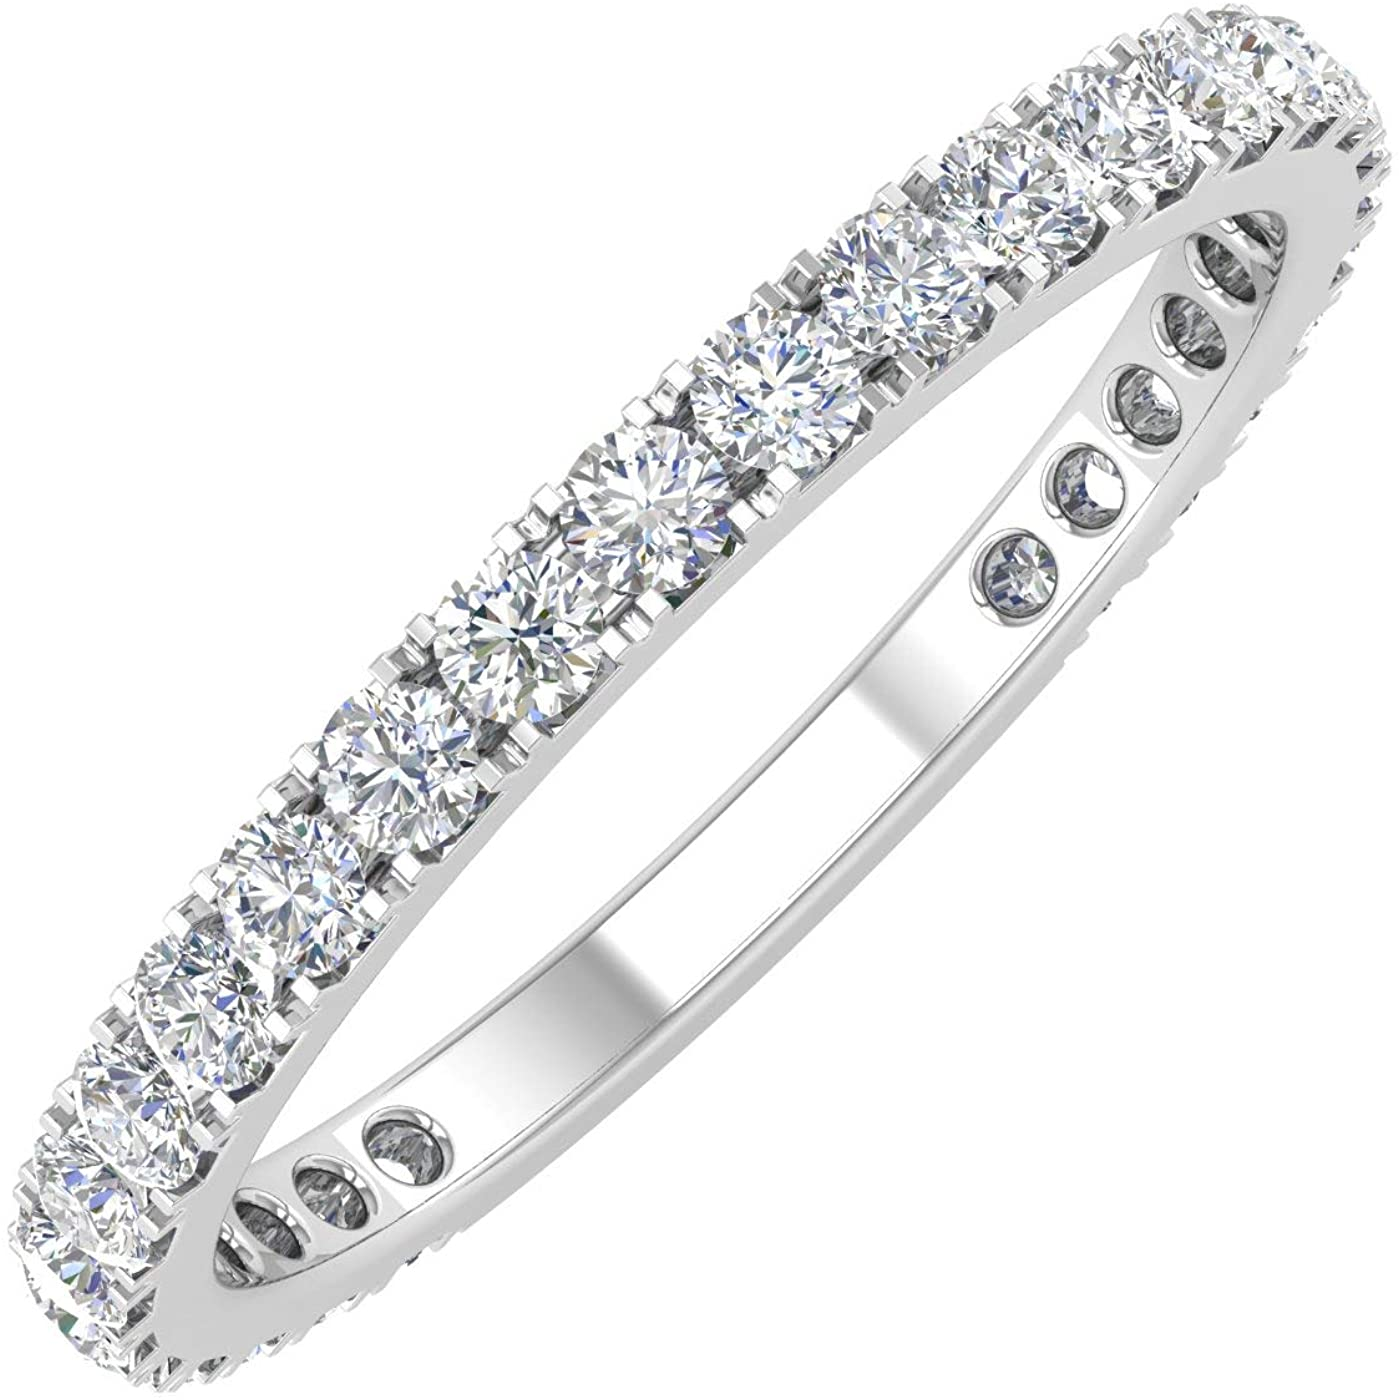 New sales 1 Cheap mail order shopping 2 Carat Diamond 3 4 Wedding Eternity in Band Gold 10k